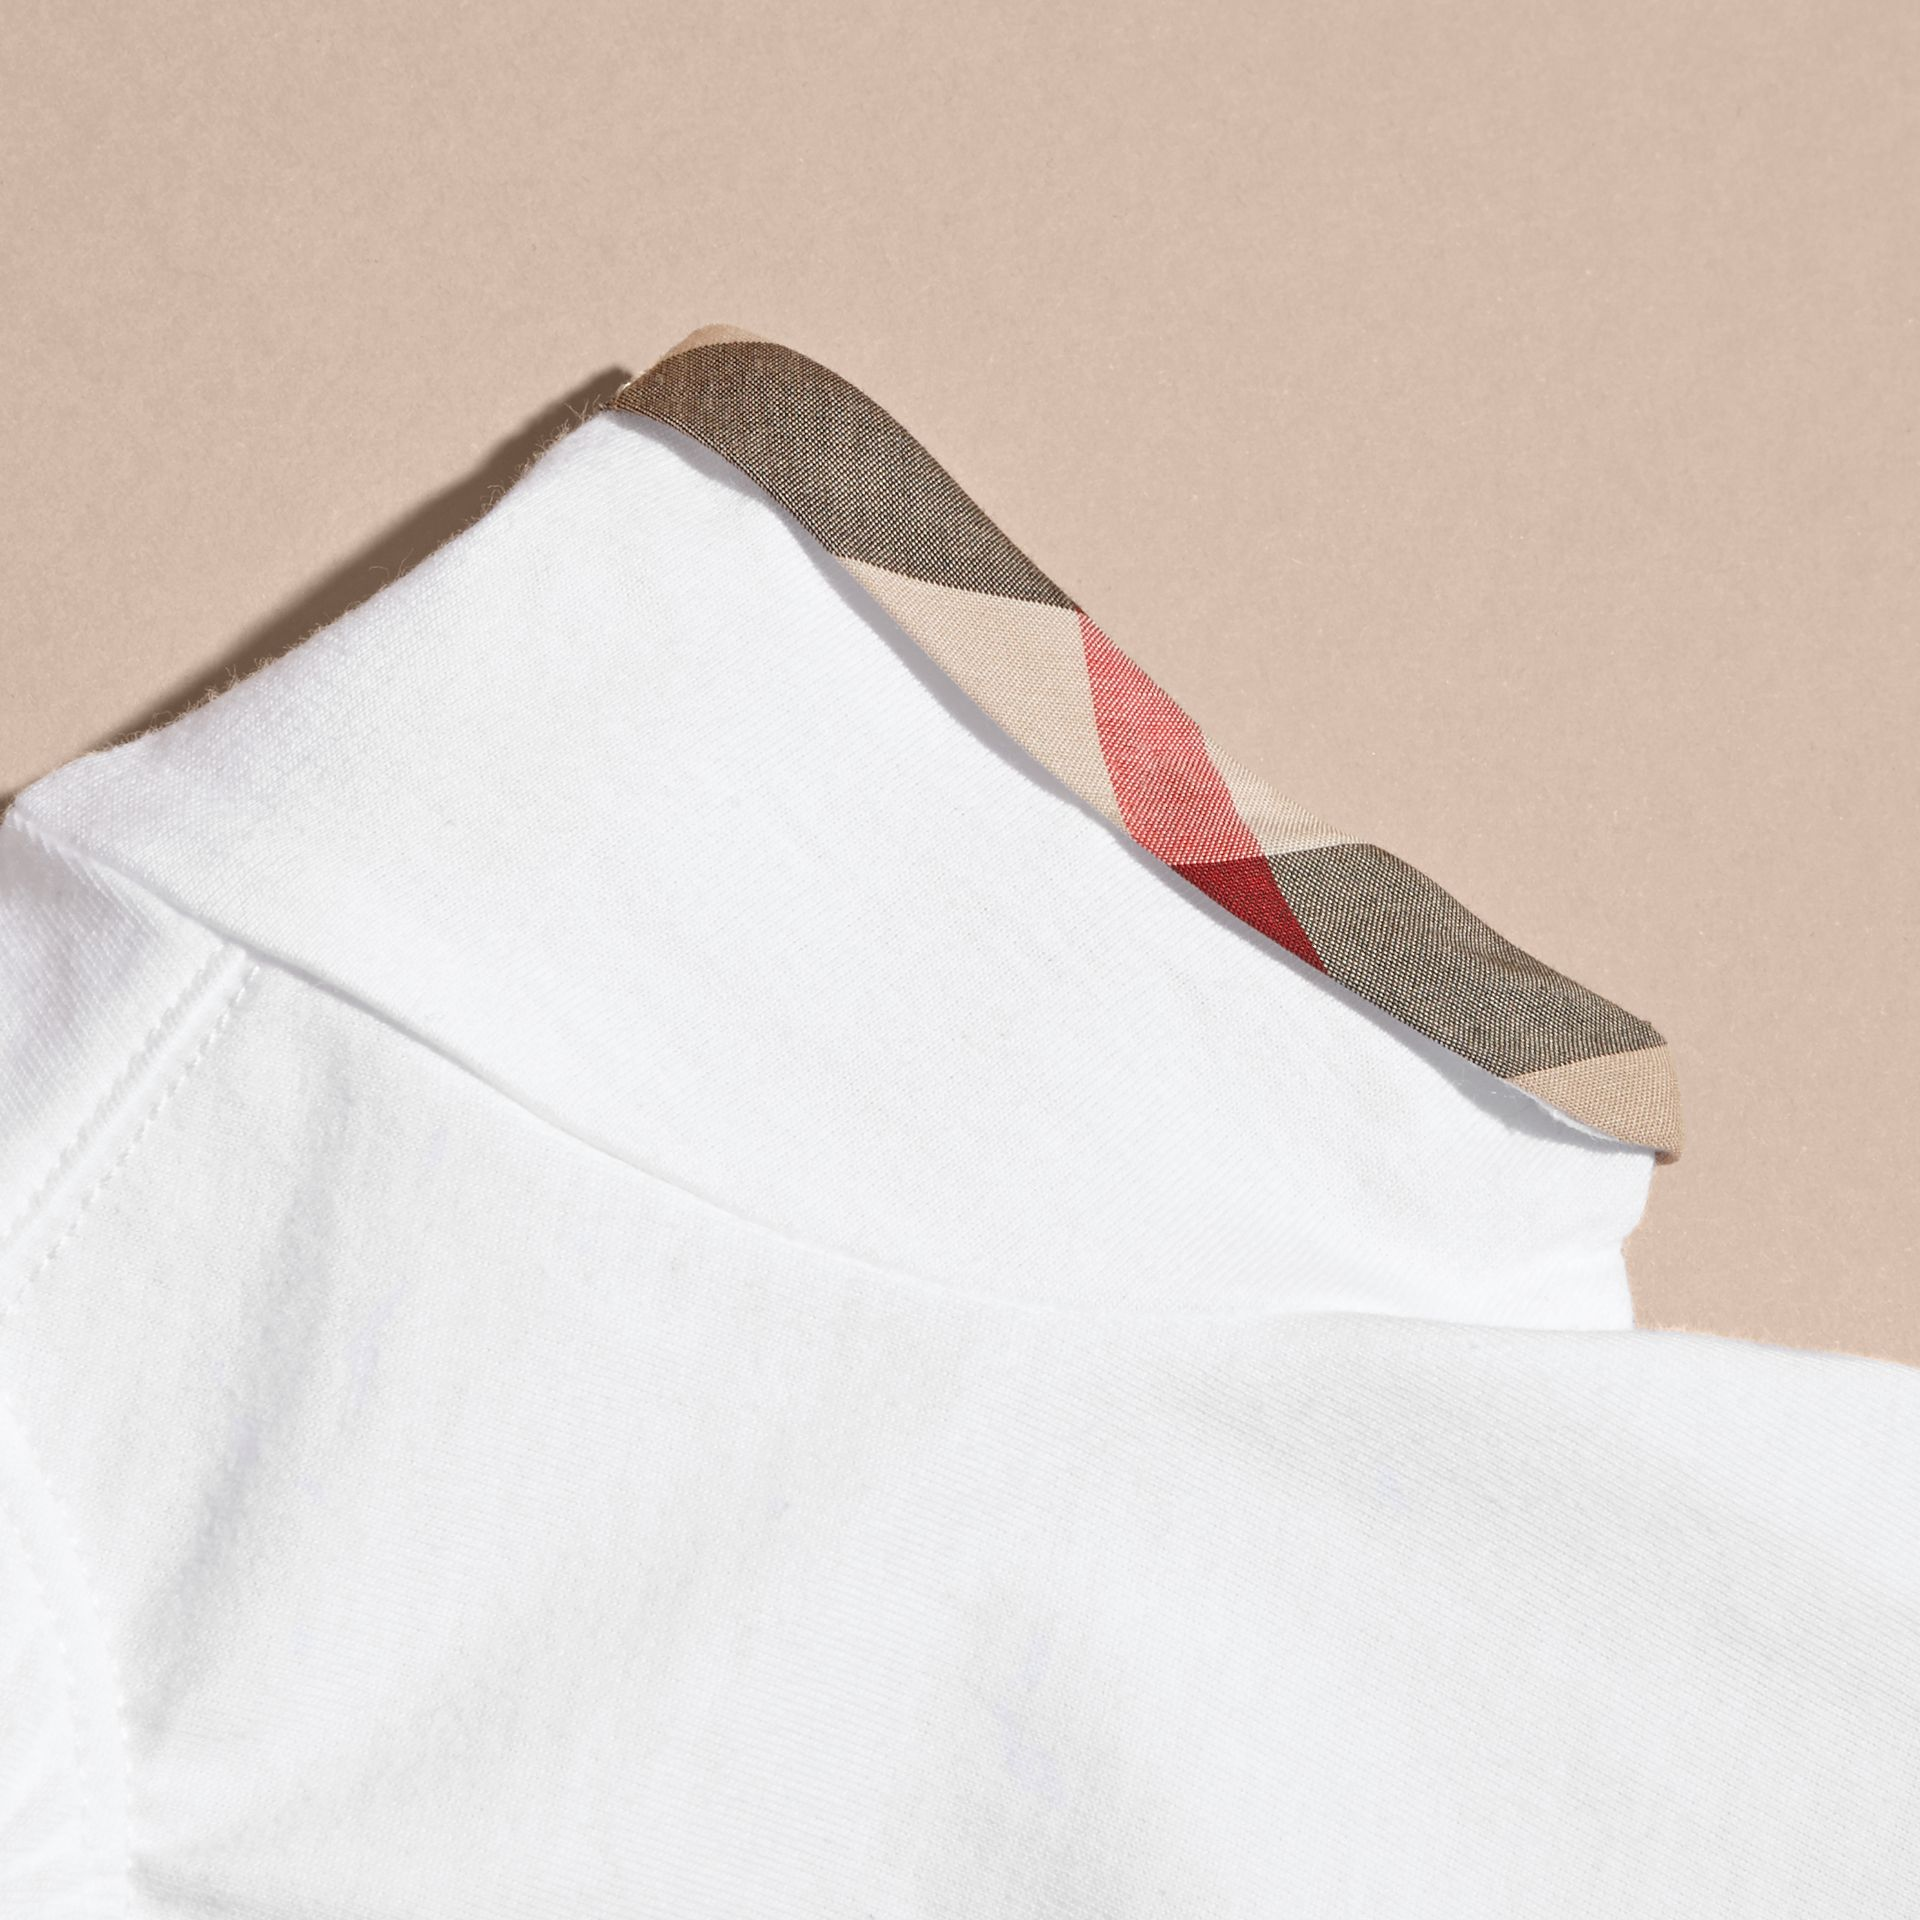 Pleat and Check Detail Cotton T-shirt in White | Burberry - gallery image 2